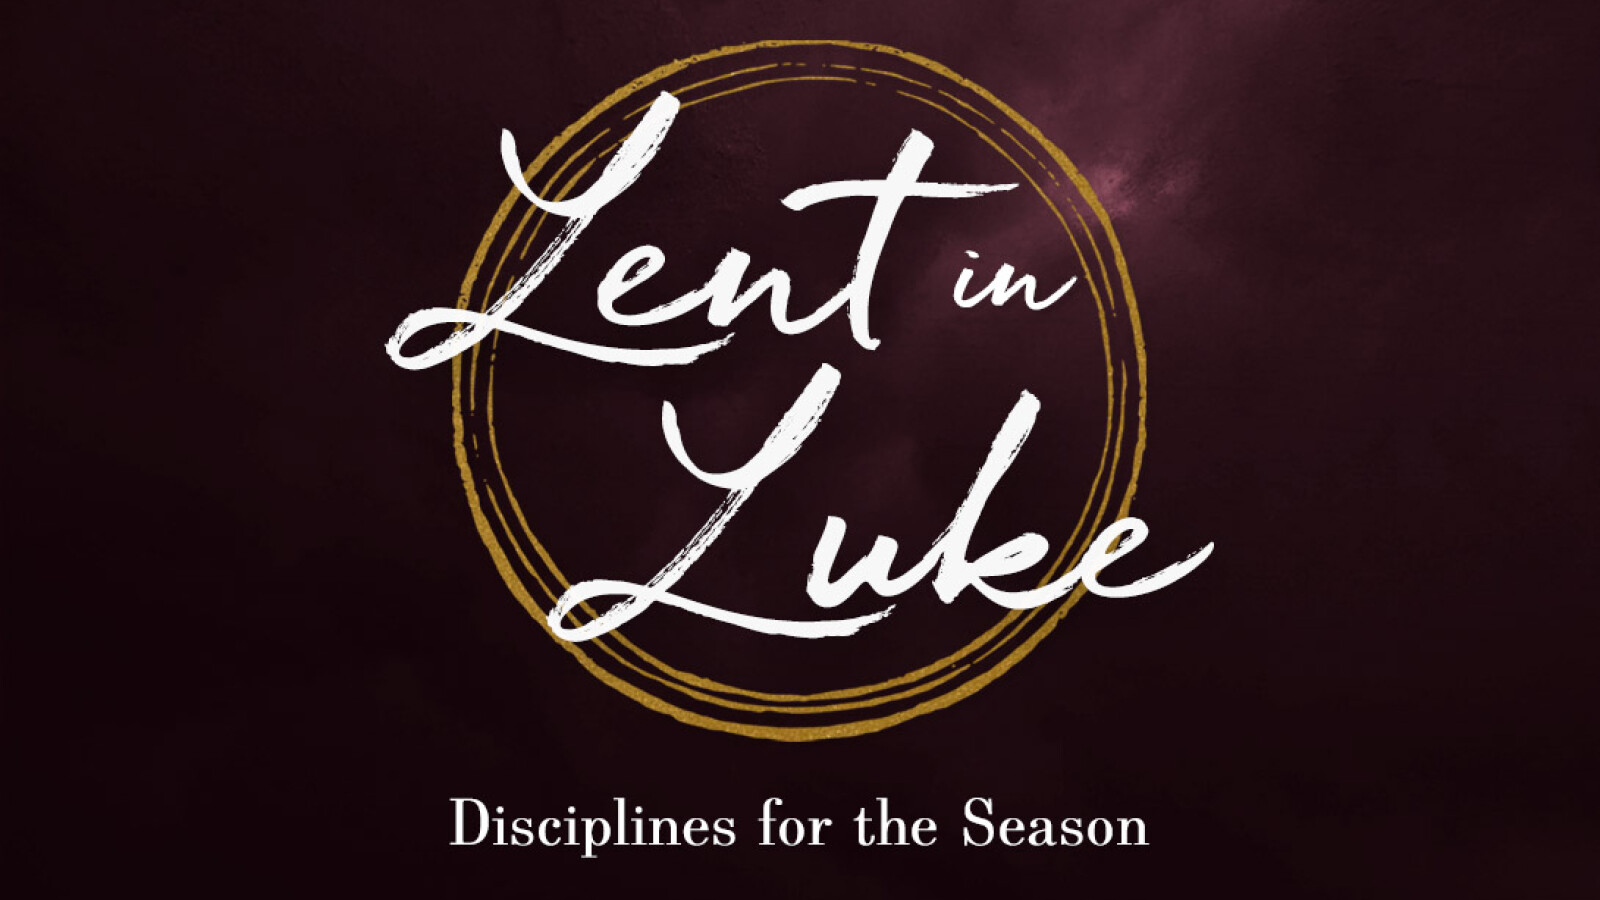 Lent in Luke: Disciplines for the Season